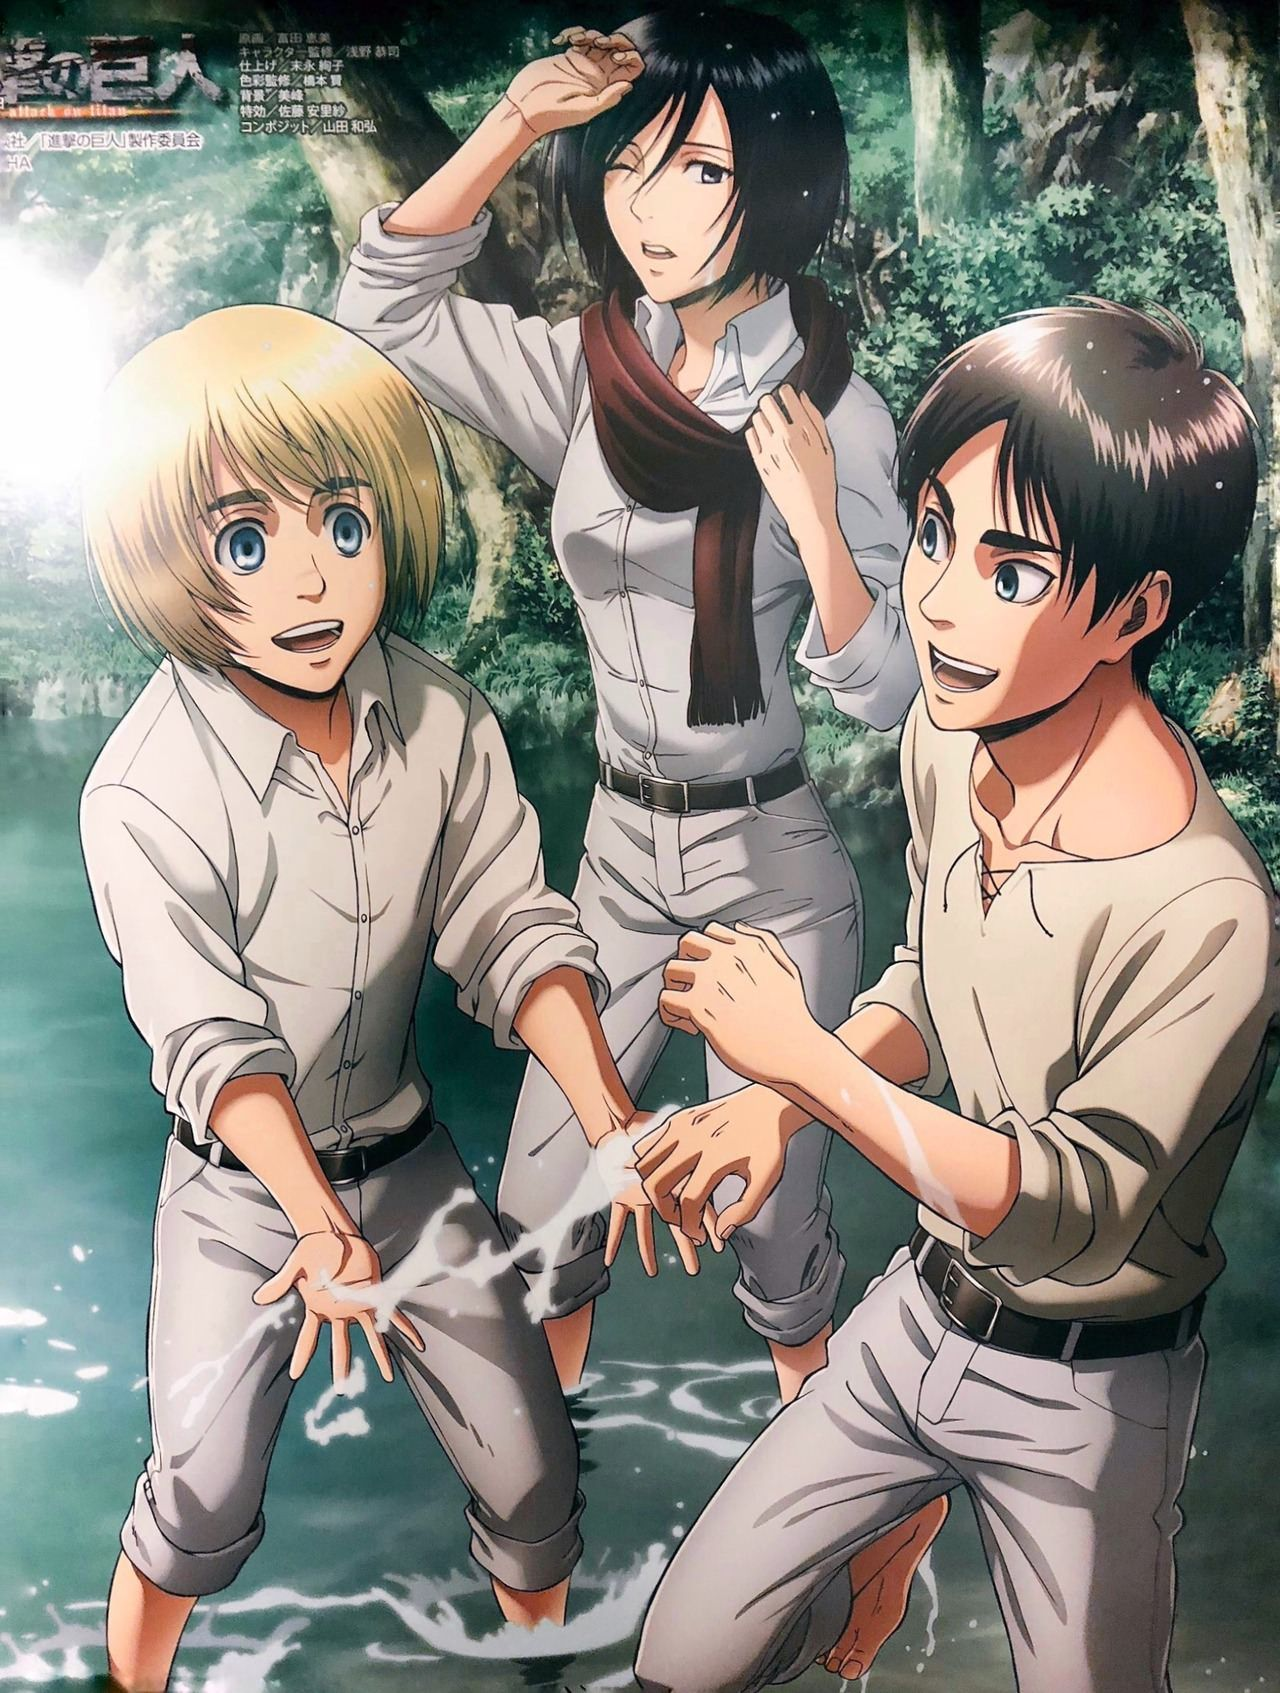 What Is This Official Image From It Looks Too Adorable Attack On Titan Anime Attack On Titan Fanart Attack On Titan Eren